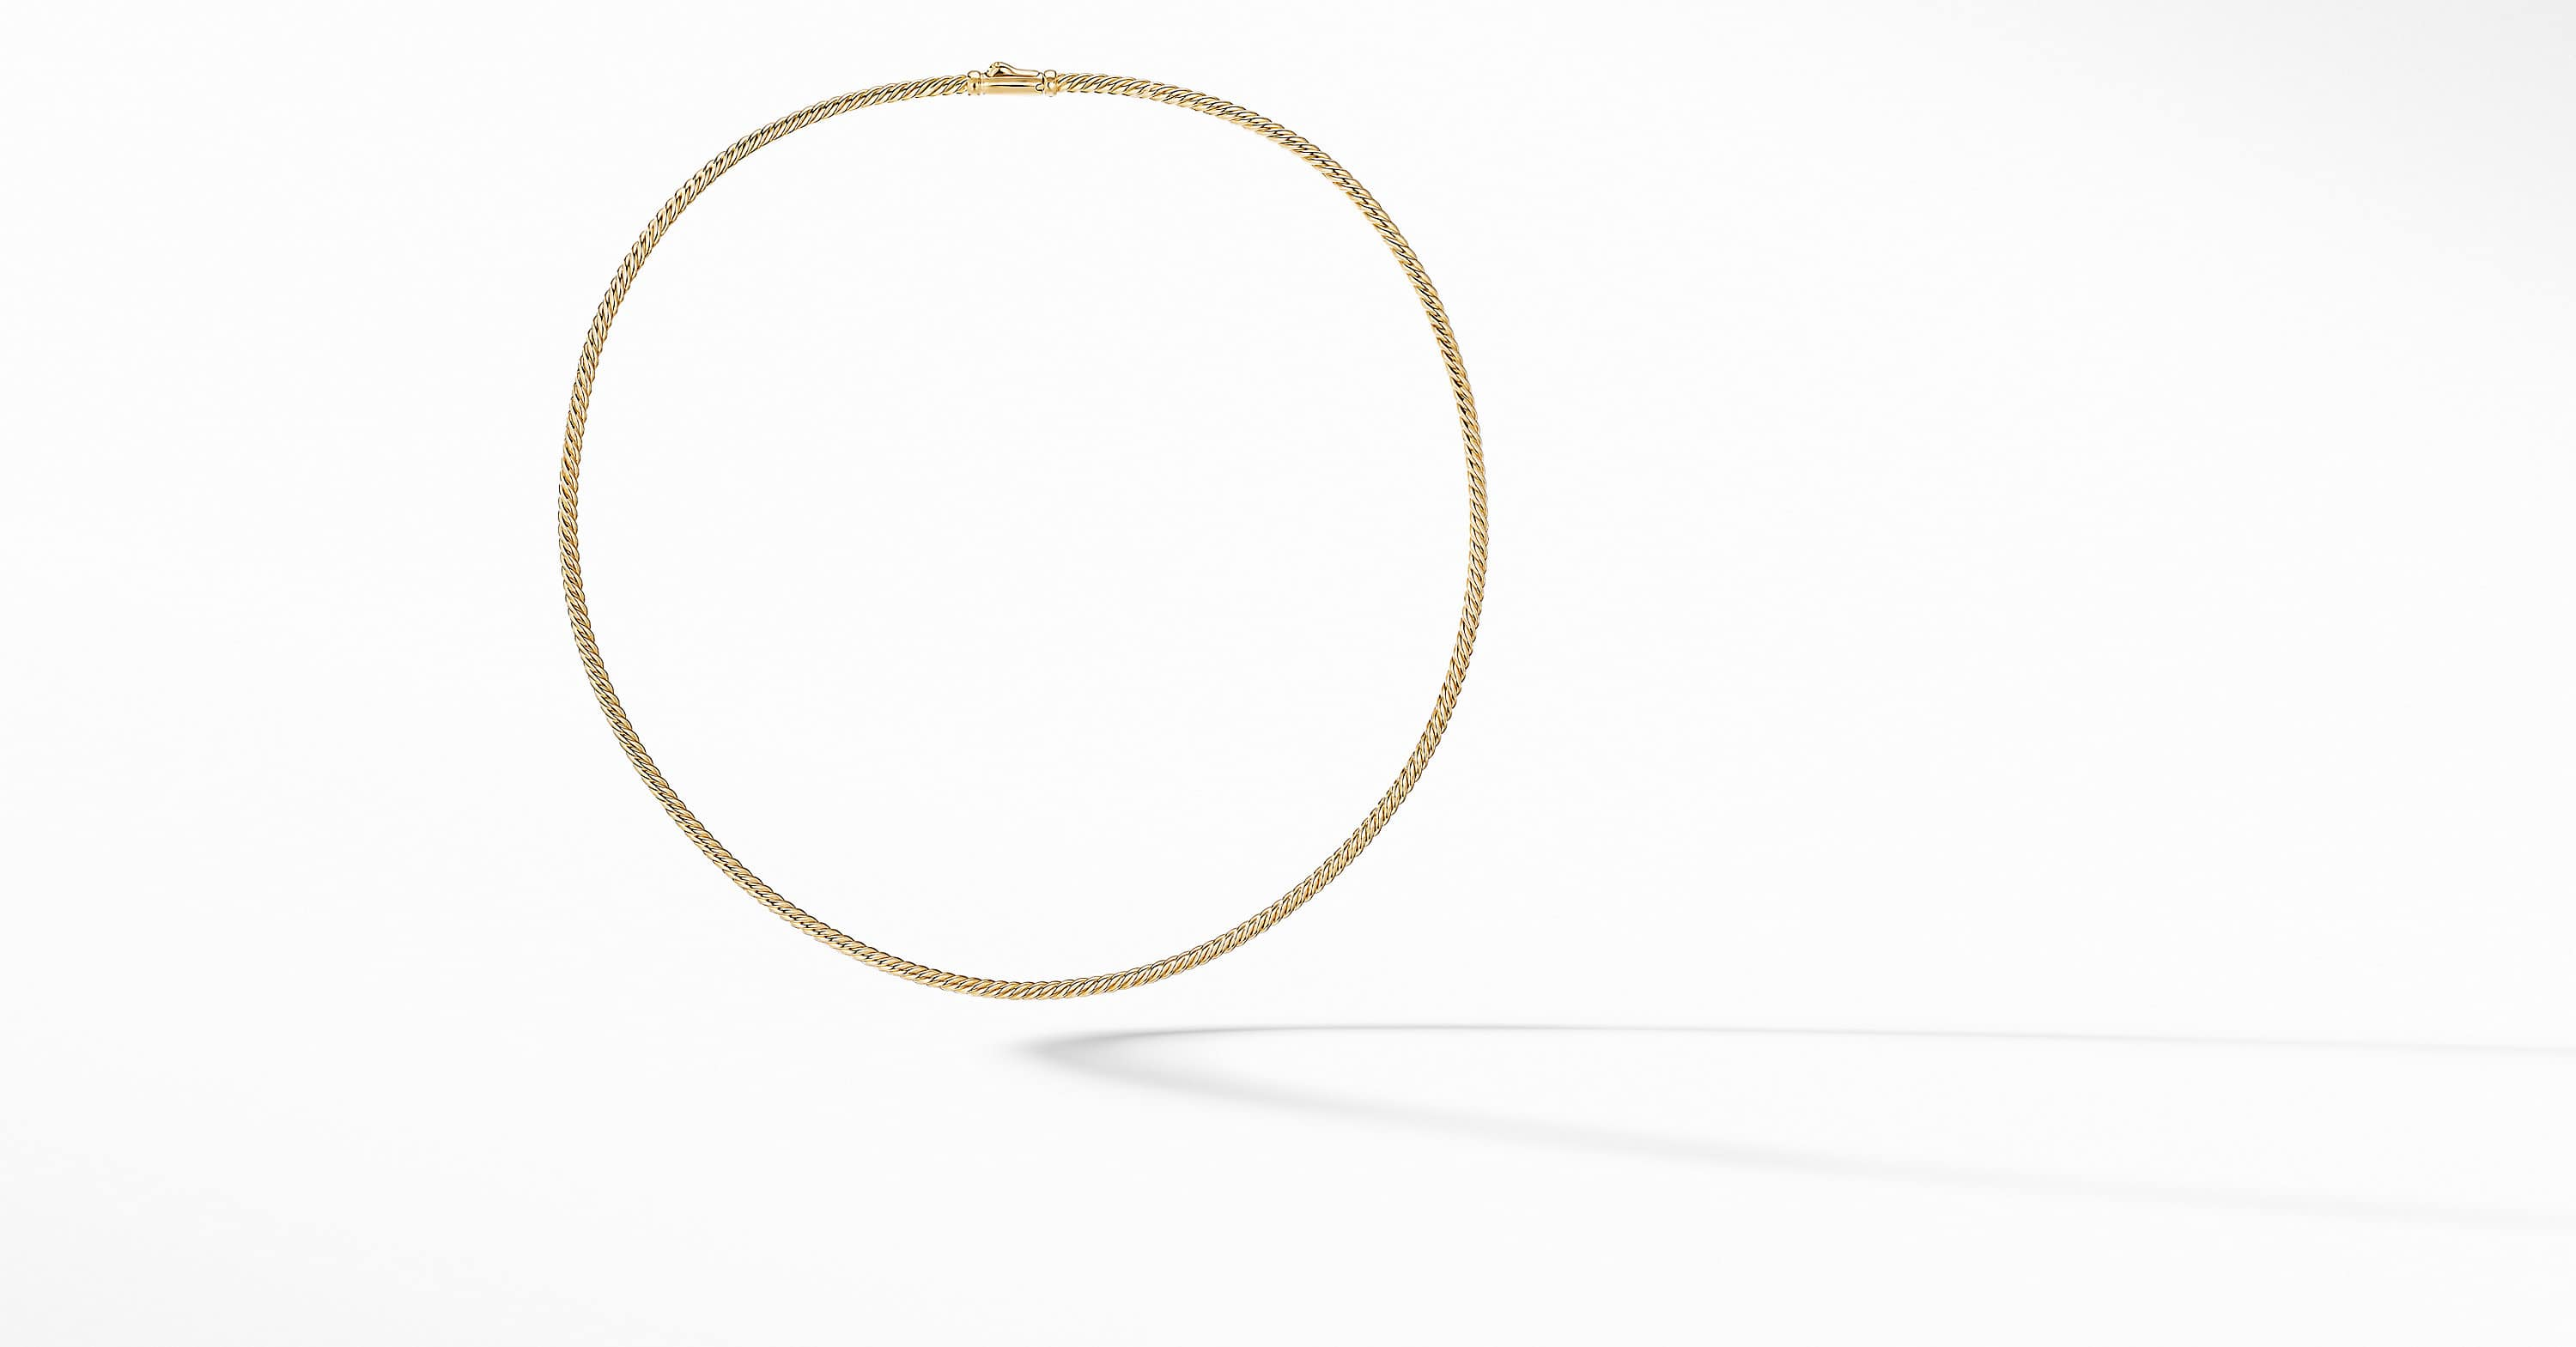 Sculpted Cable Necklace in 18K Yellow Gold, 2.6mm